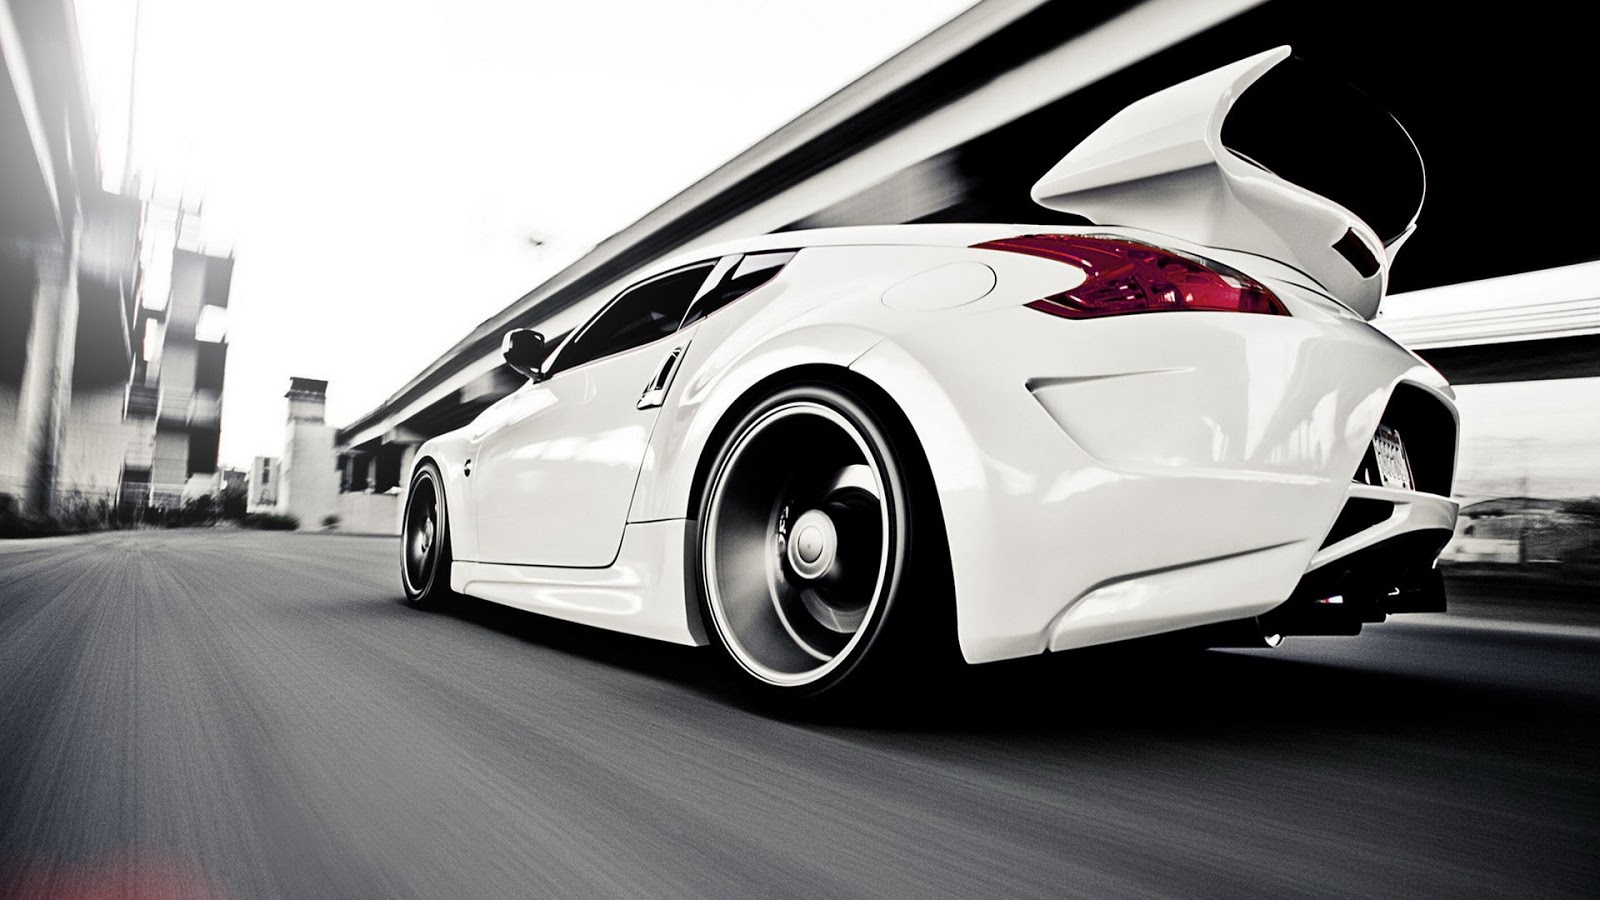 Nissan White Car Hd For Desktop